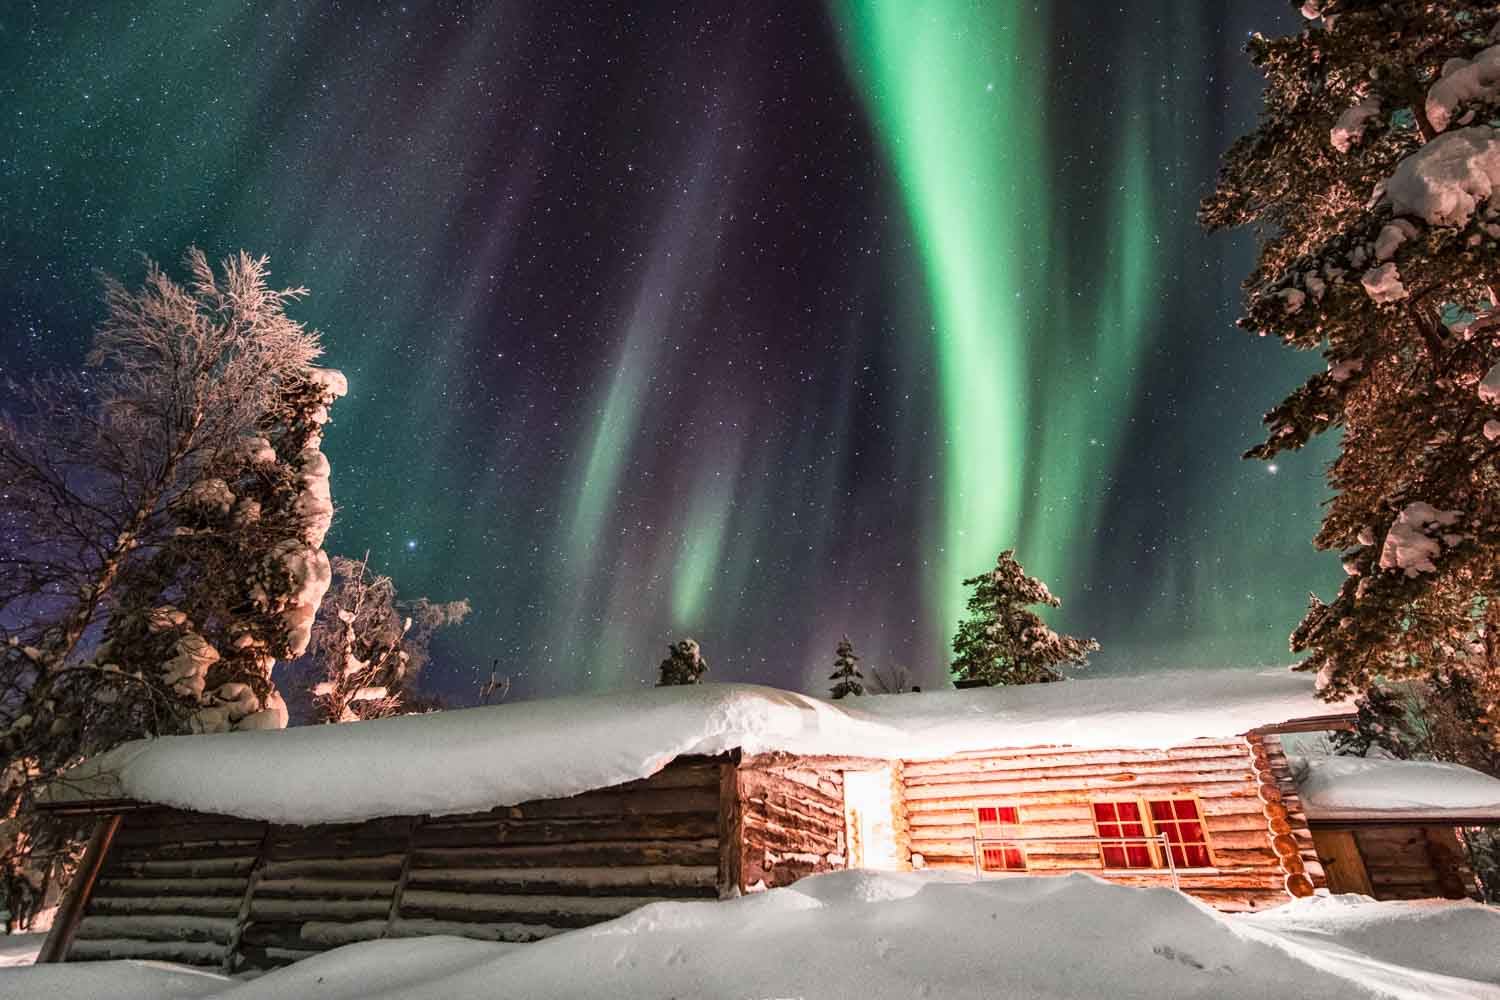 Exploring the Elements: Air at its finest, displaying the Aurora Borealis in Finland.